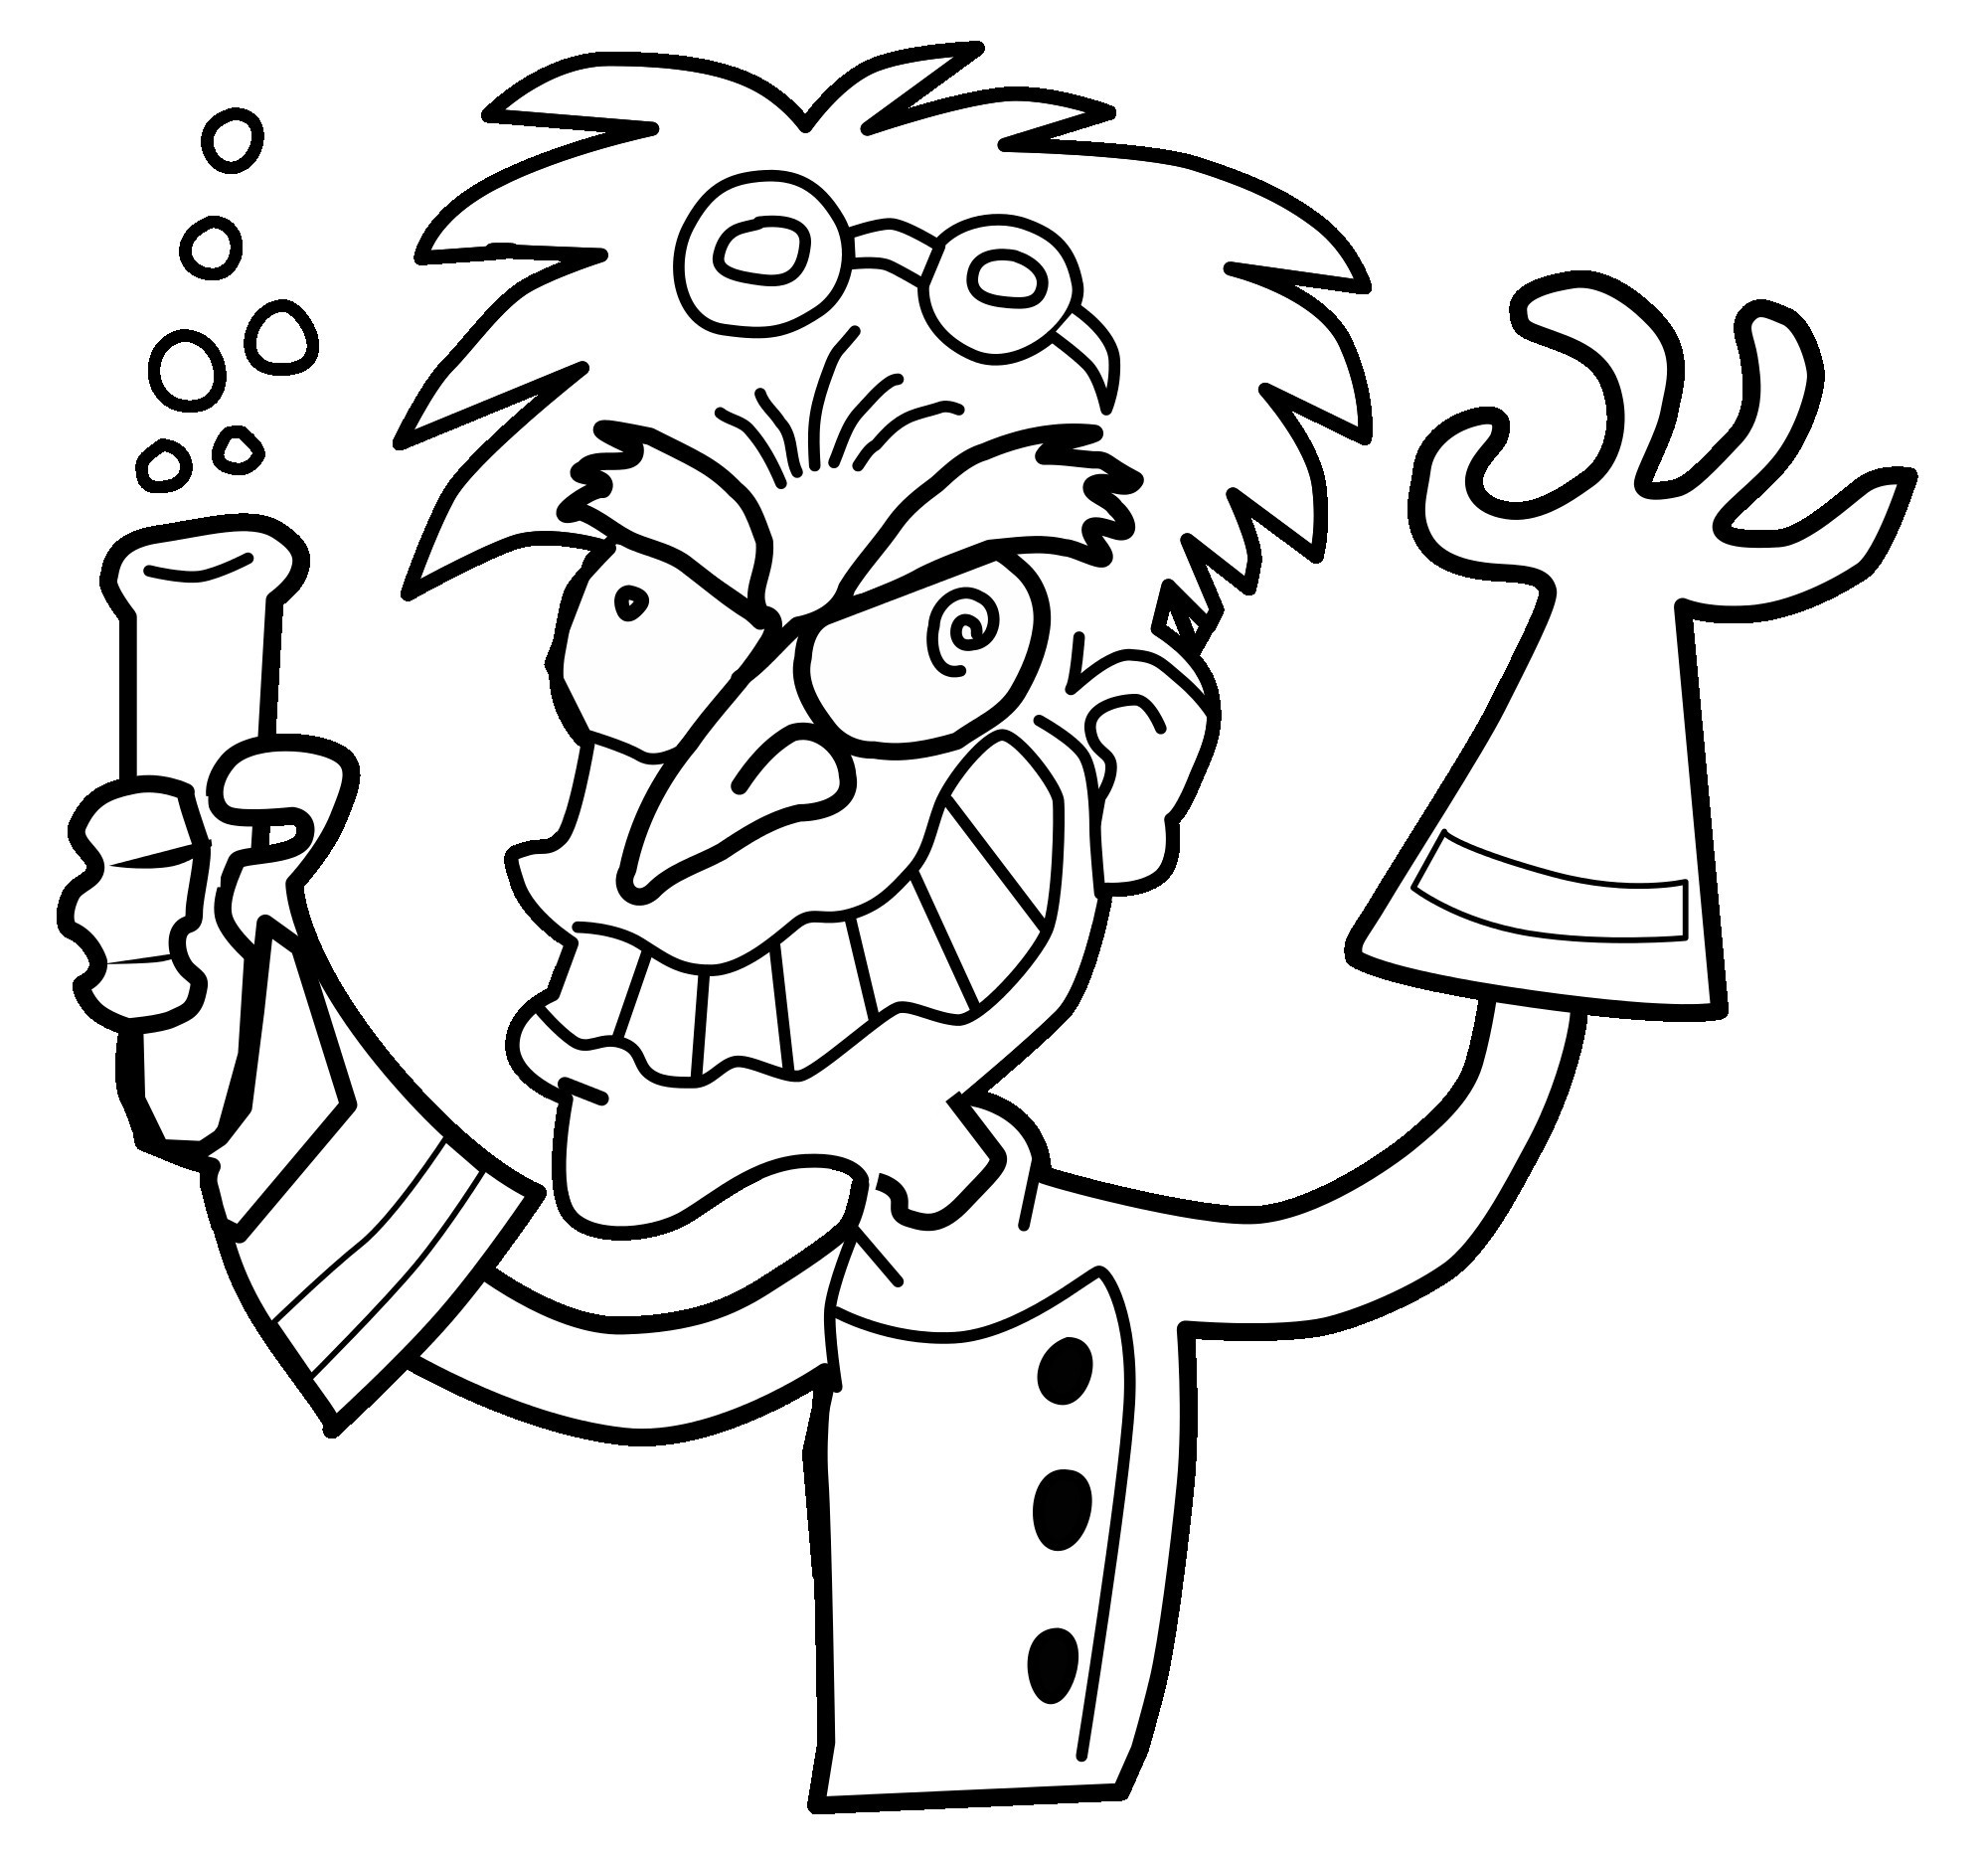 2000x1871 Mad Scientist Coloring Page Tixac